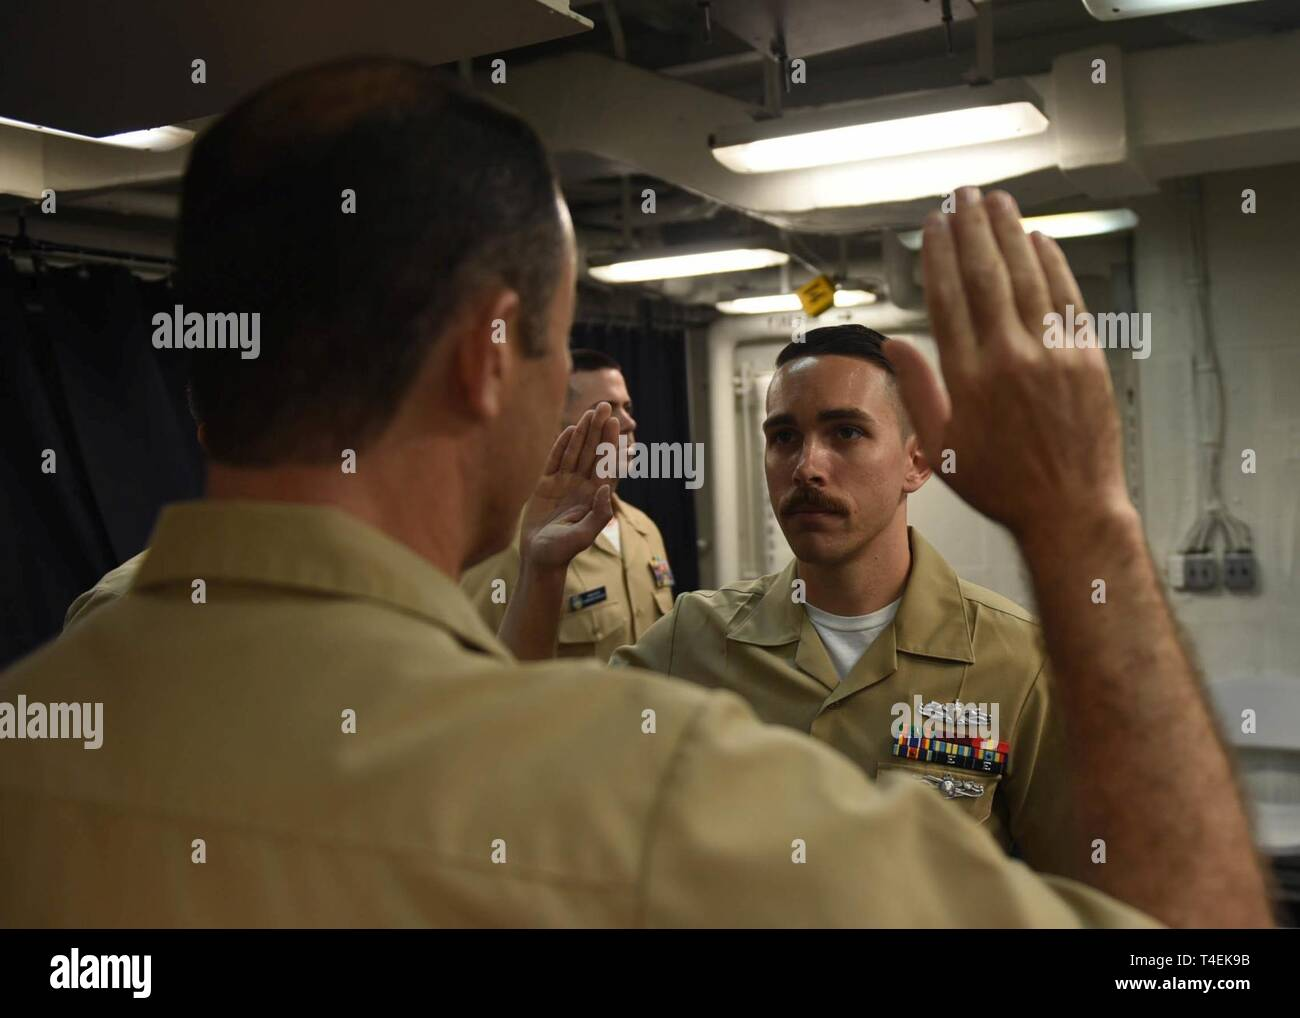 SOUTH CHINA SEA (April 1, 2019) - Ensign Dylan J. Rich, from St. Clair Shores, Mich., recites the oath during his commissioning ceremony aboard U.S. 7th Fleet Flagship USS Blue Ridge (LCC 19). Rich, a former hospital corpsman 1st class, was commissioned through the Navy's Health Service Collegiate Program. Blue Ridge is the oldest operational ship in the Navy, and as 7th Fleet command ship, is responsible for fostering relationships within the Indo-Pacific Region. - Stock Image